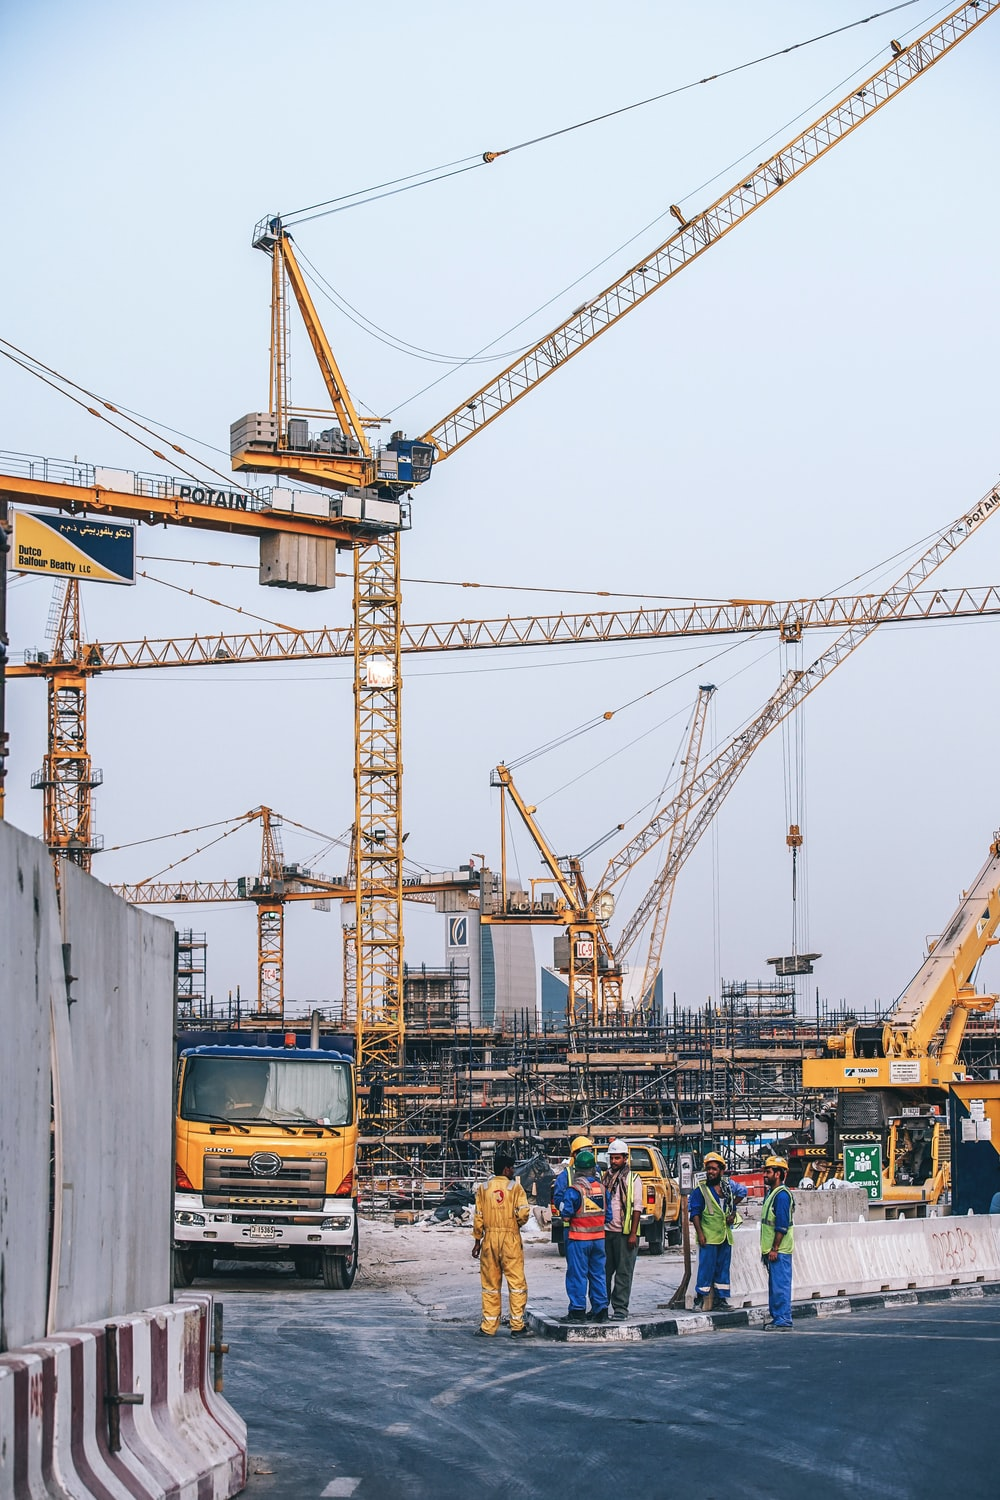 construction site pictures download free images on unsplash